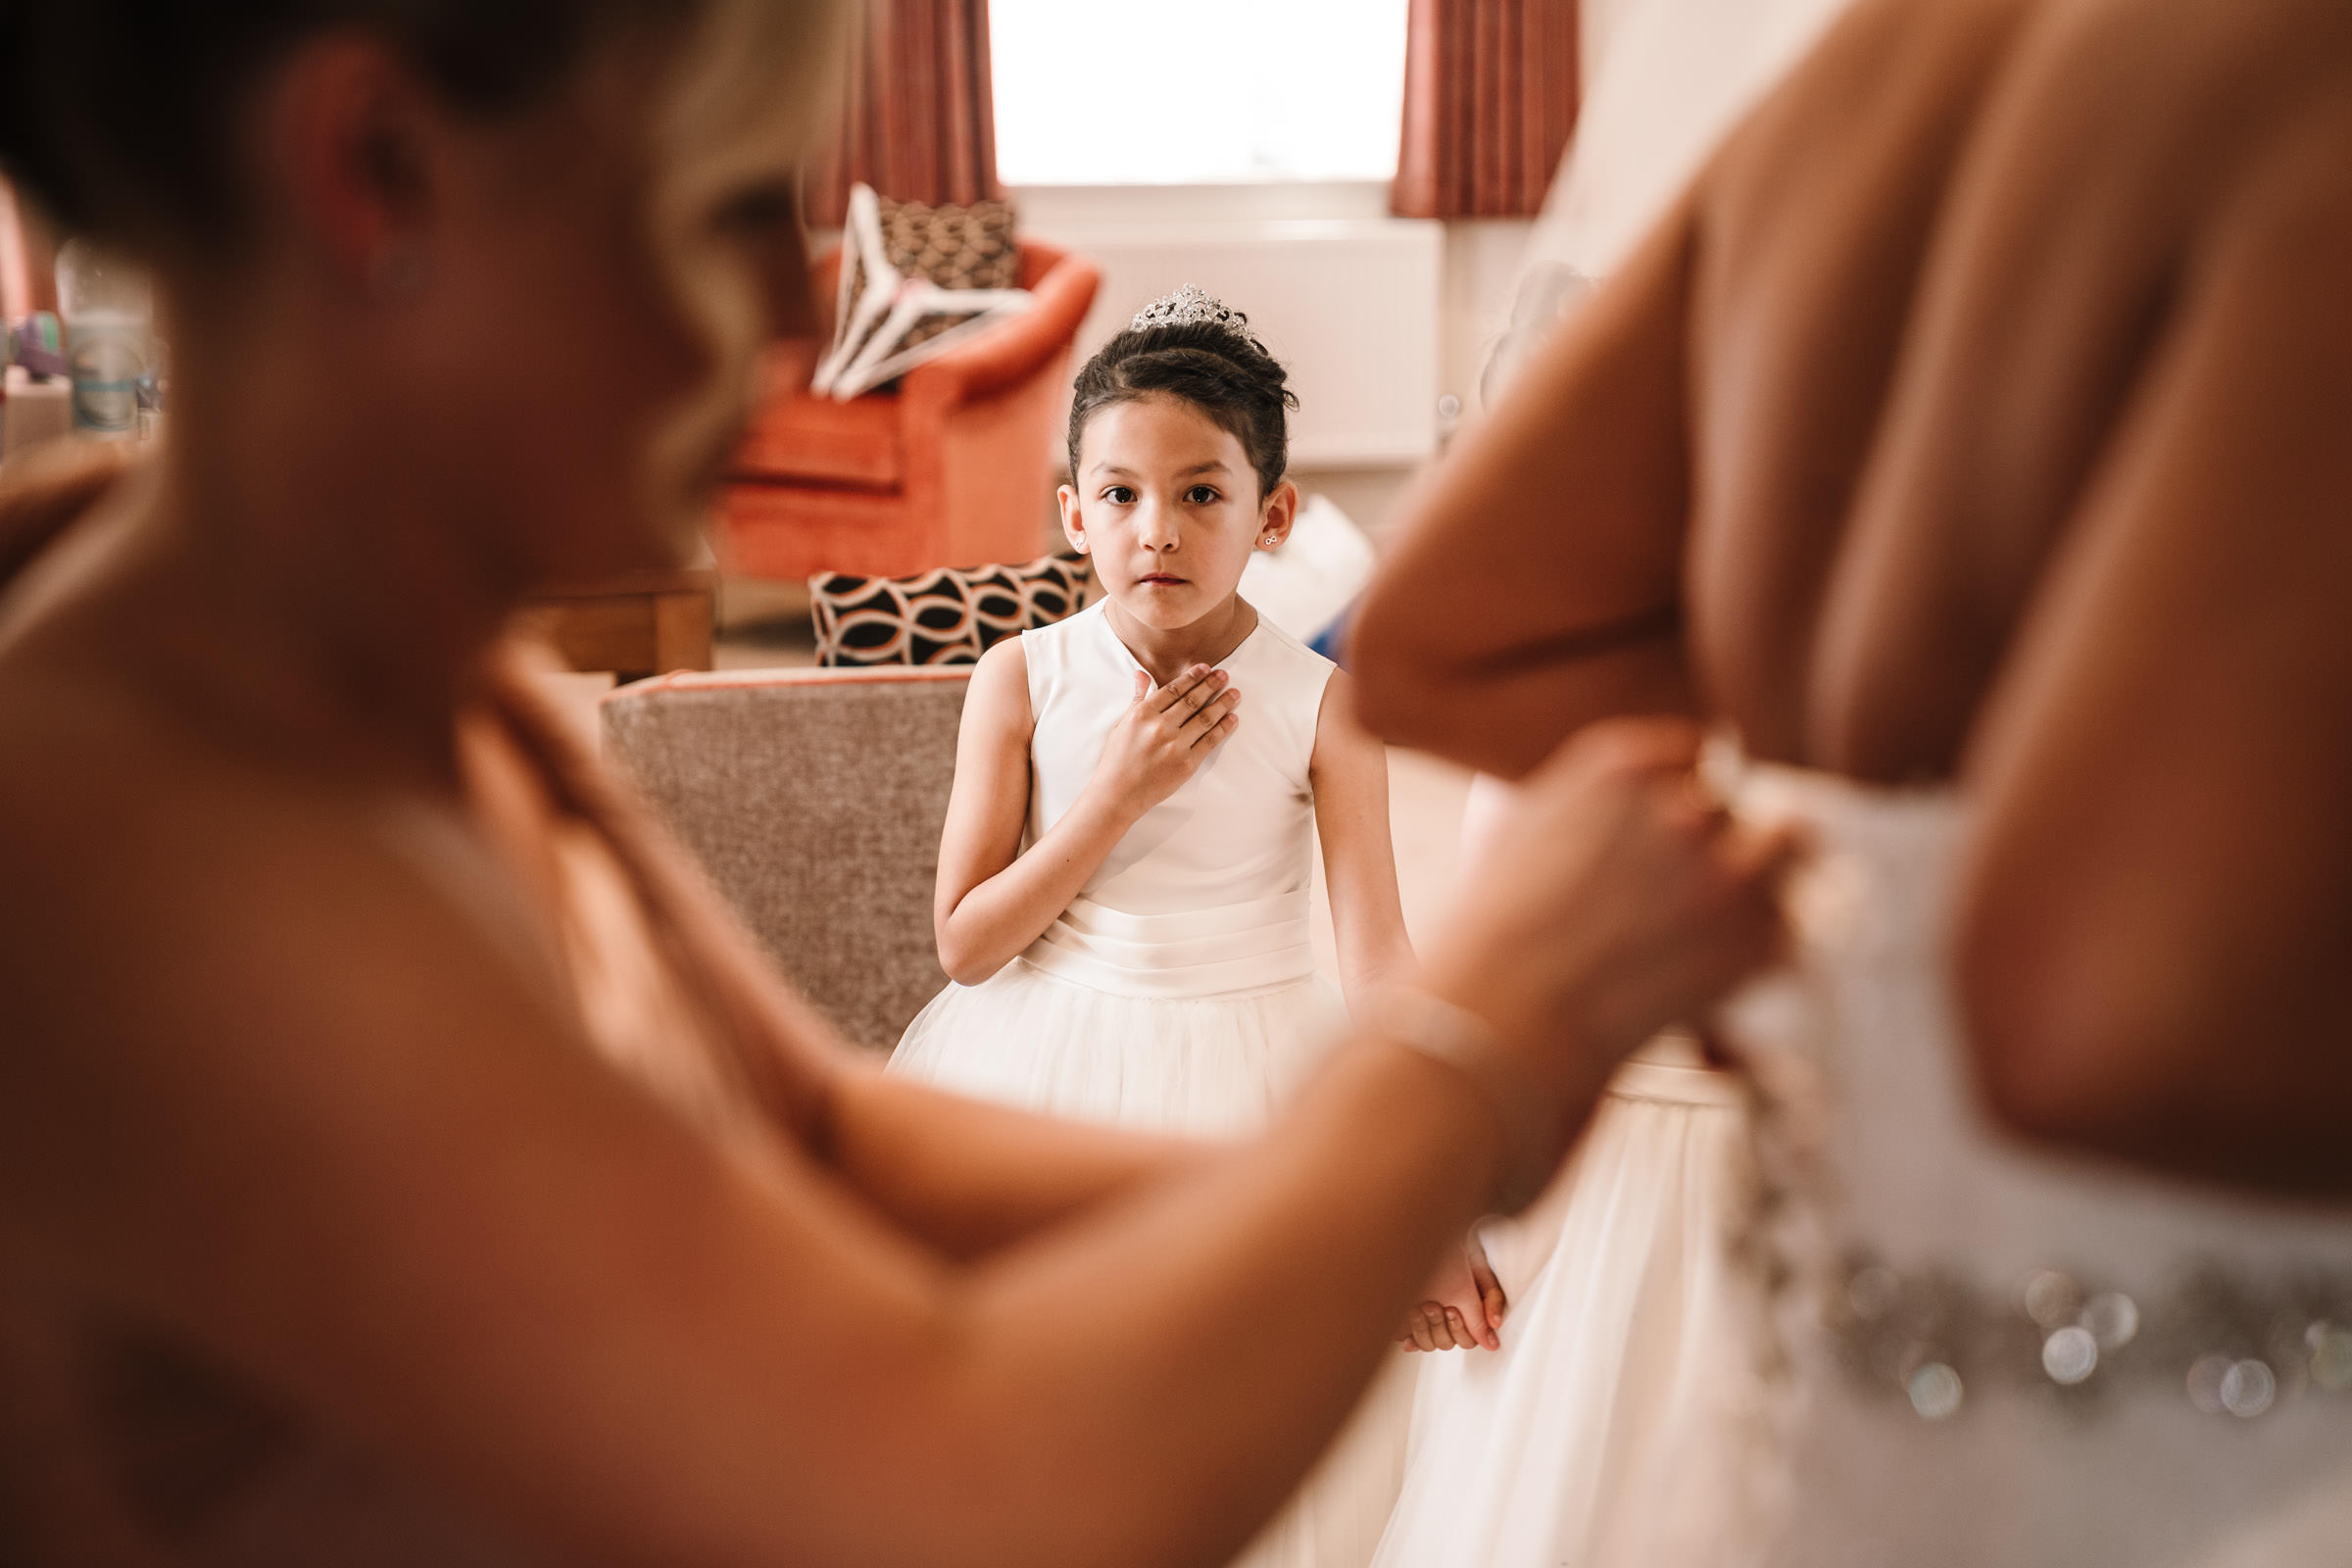 flower girl watching bride get dressed for wedding at nailcote hall